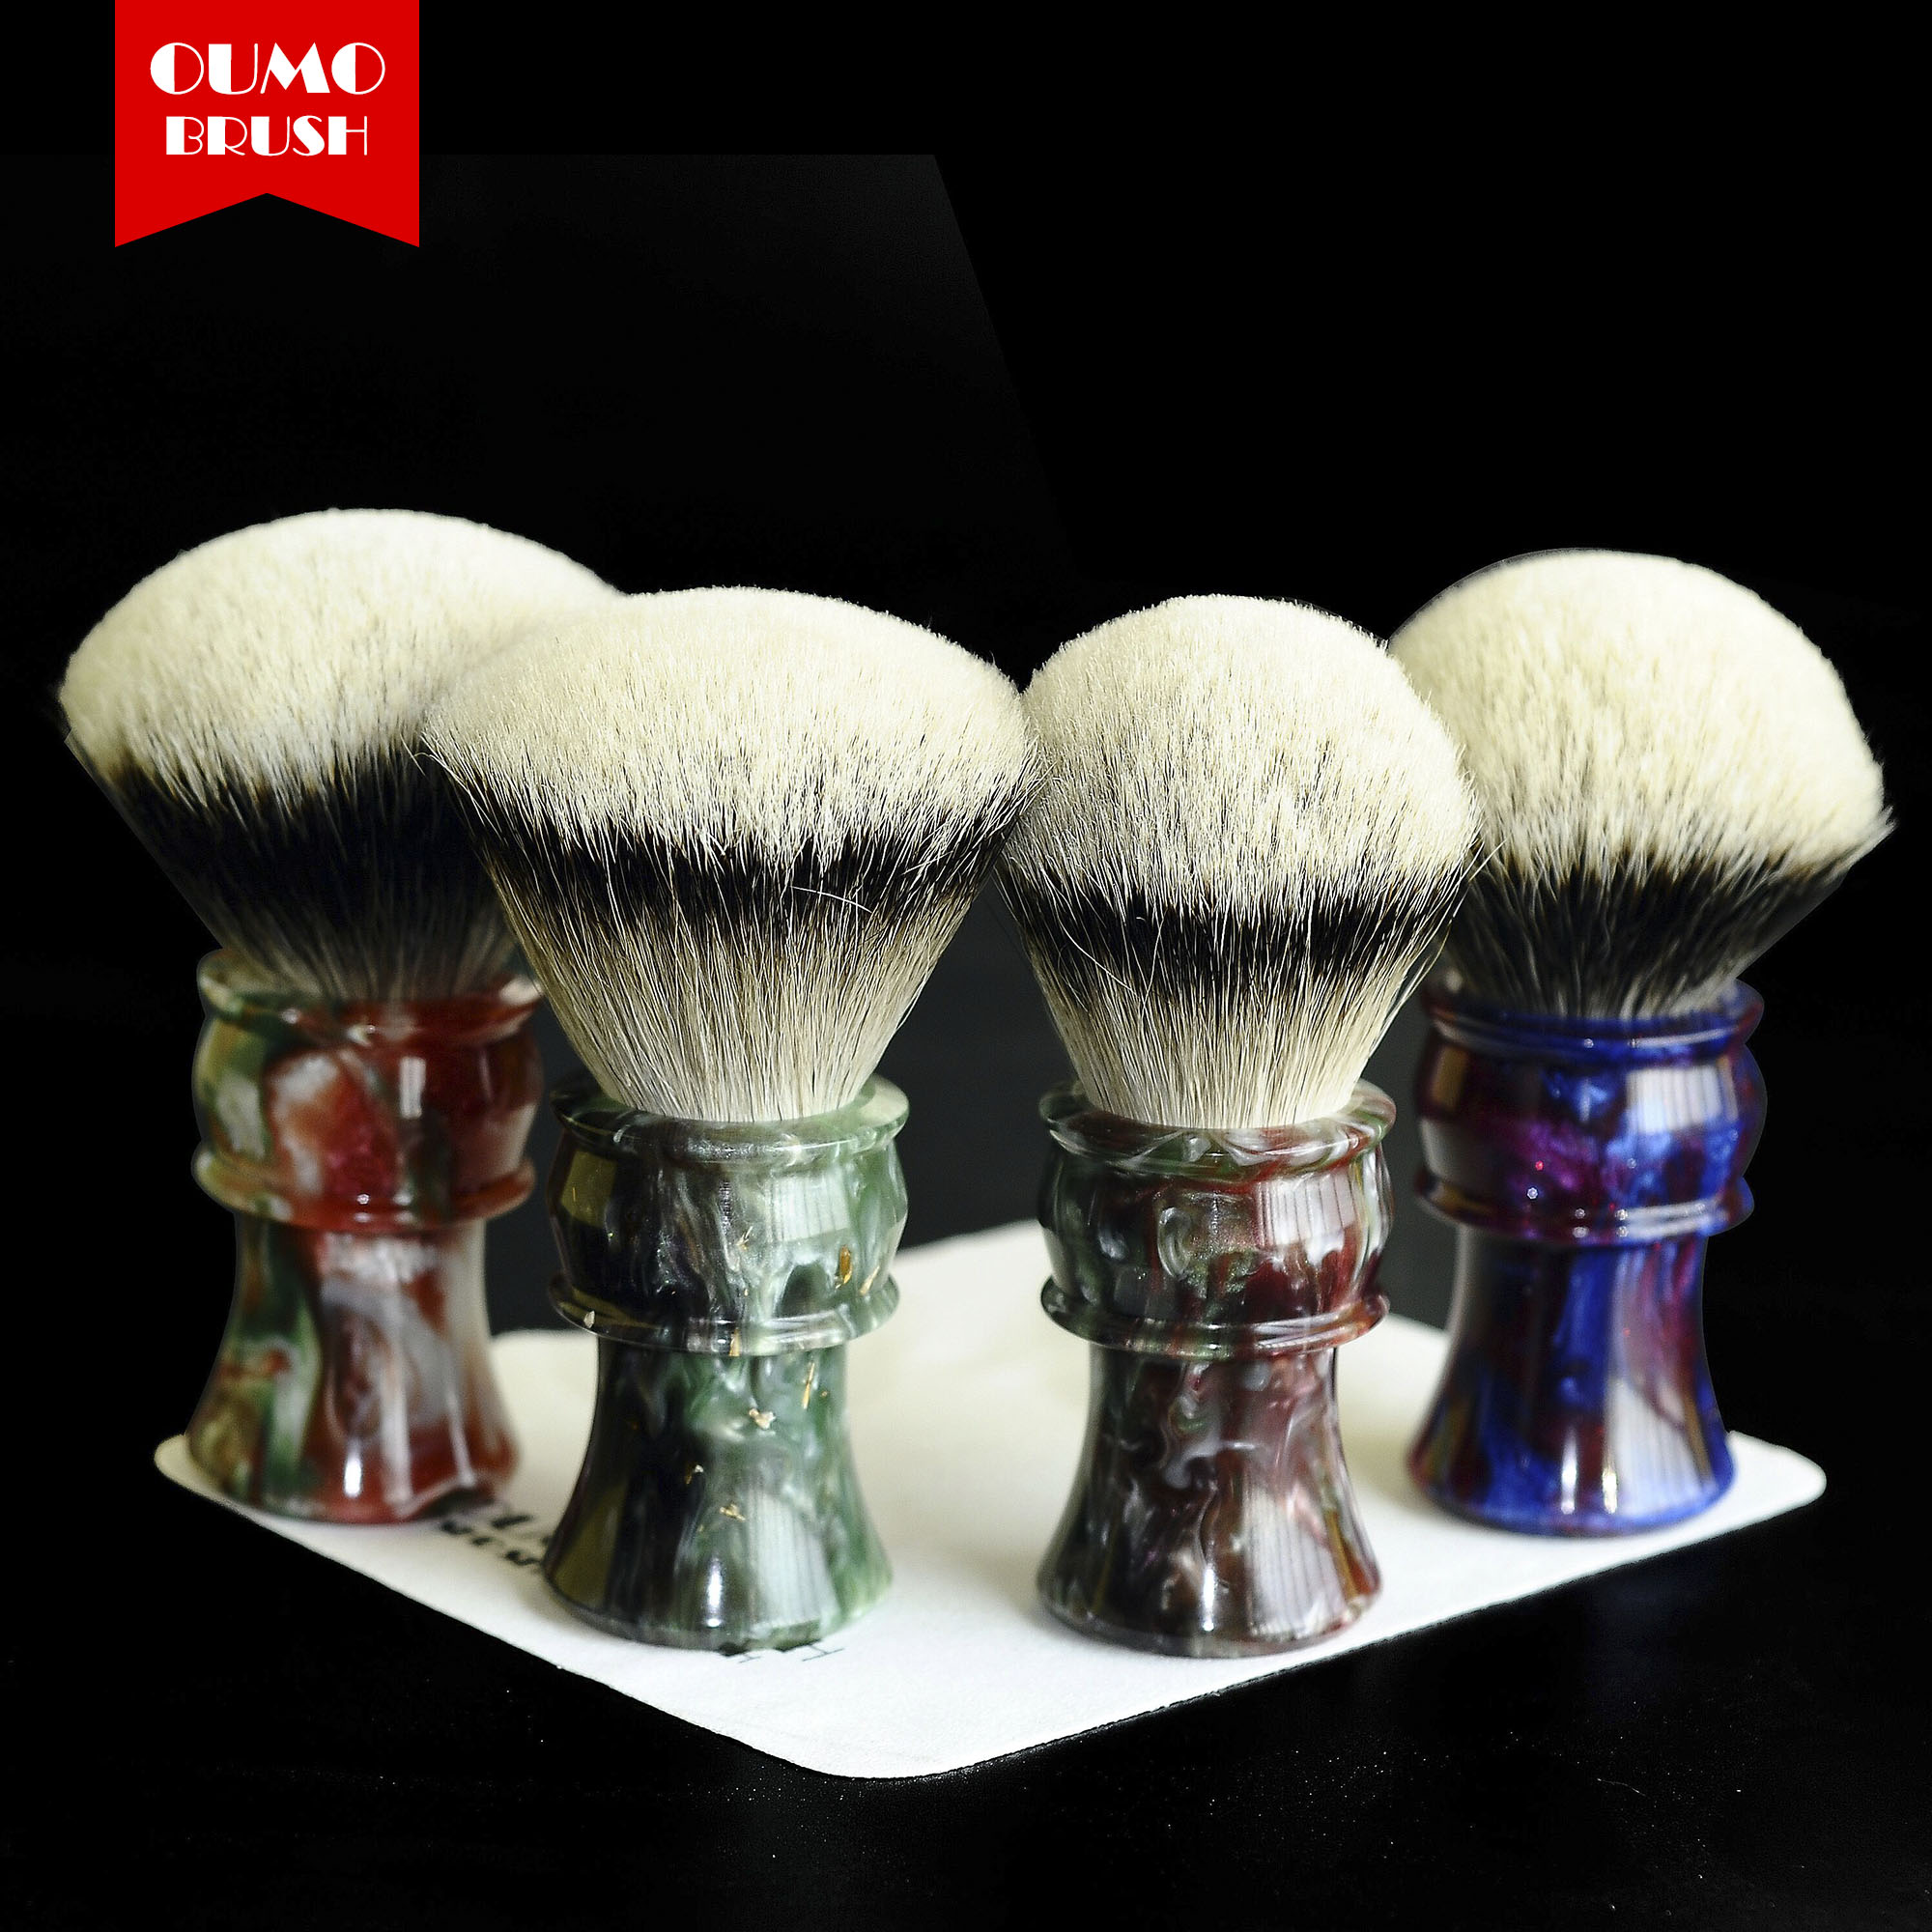 OUMO BRUSH - 2019/9/17 TITAN Art Shaving Brush With SHD HMW Silvertip Manchuria Finest 2 Band Gel City 30MM